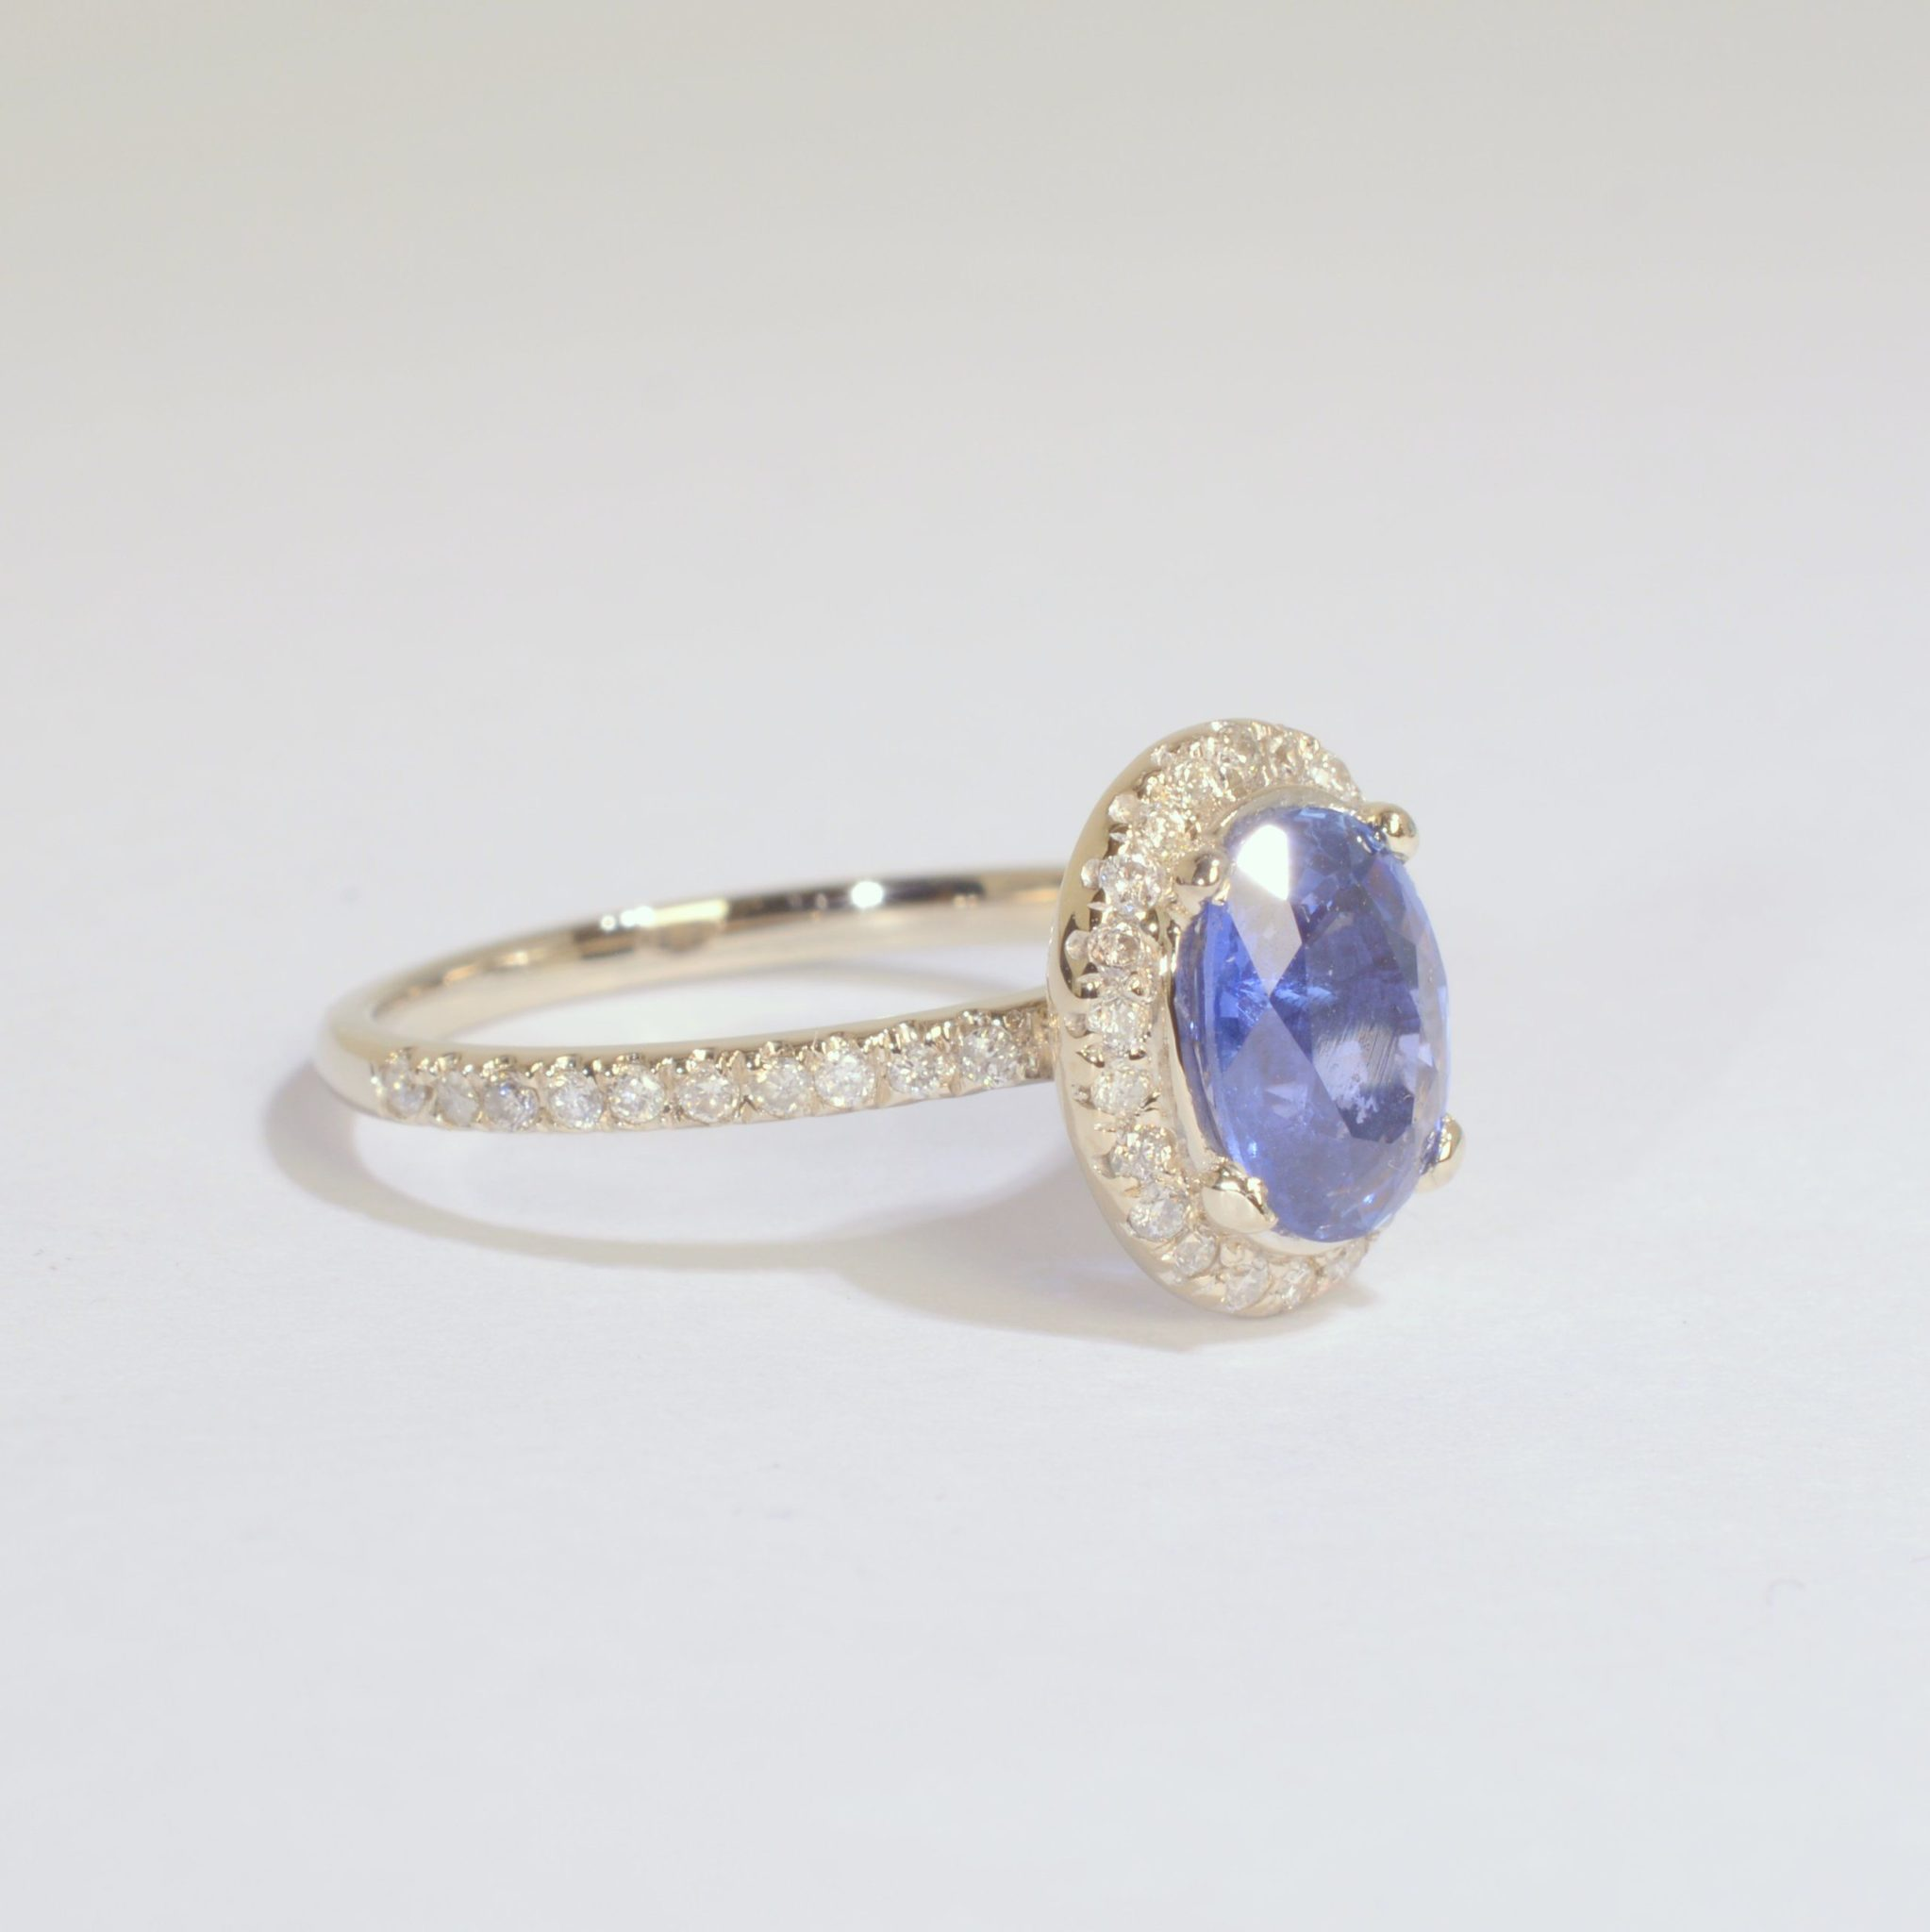 1 45 Royal Blue Sapphire engagement ring top royal blue wholesale price Sku